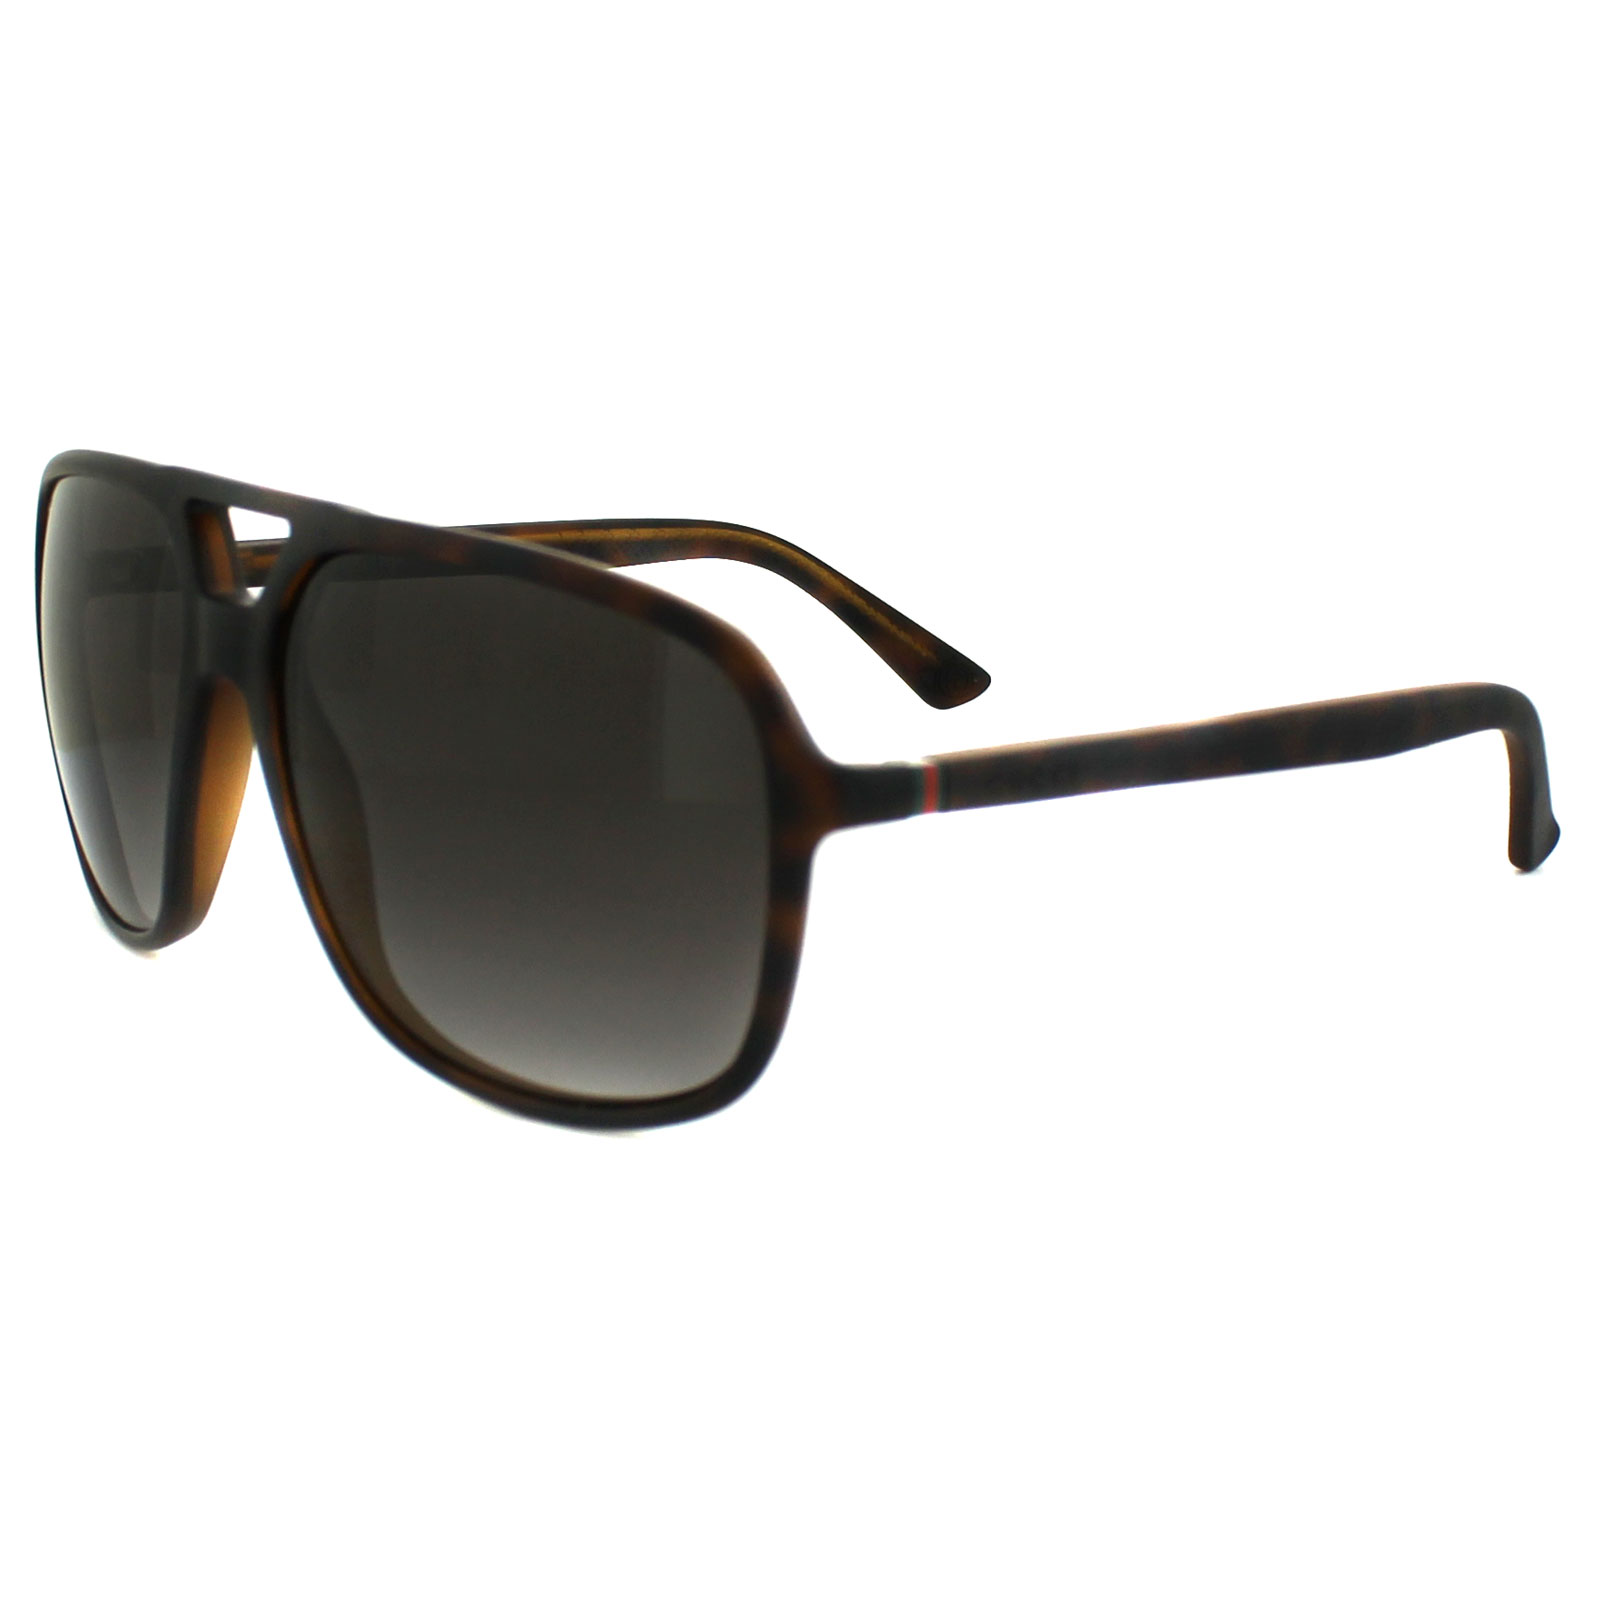 Cheap Gucci 1091 Sunglasses Discounted Sunglasses